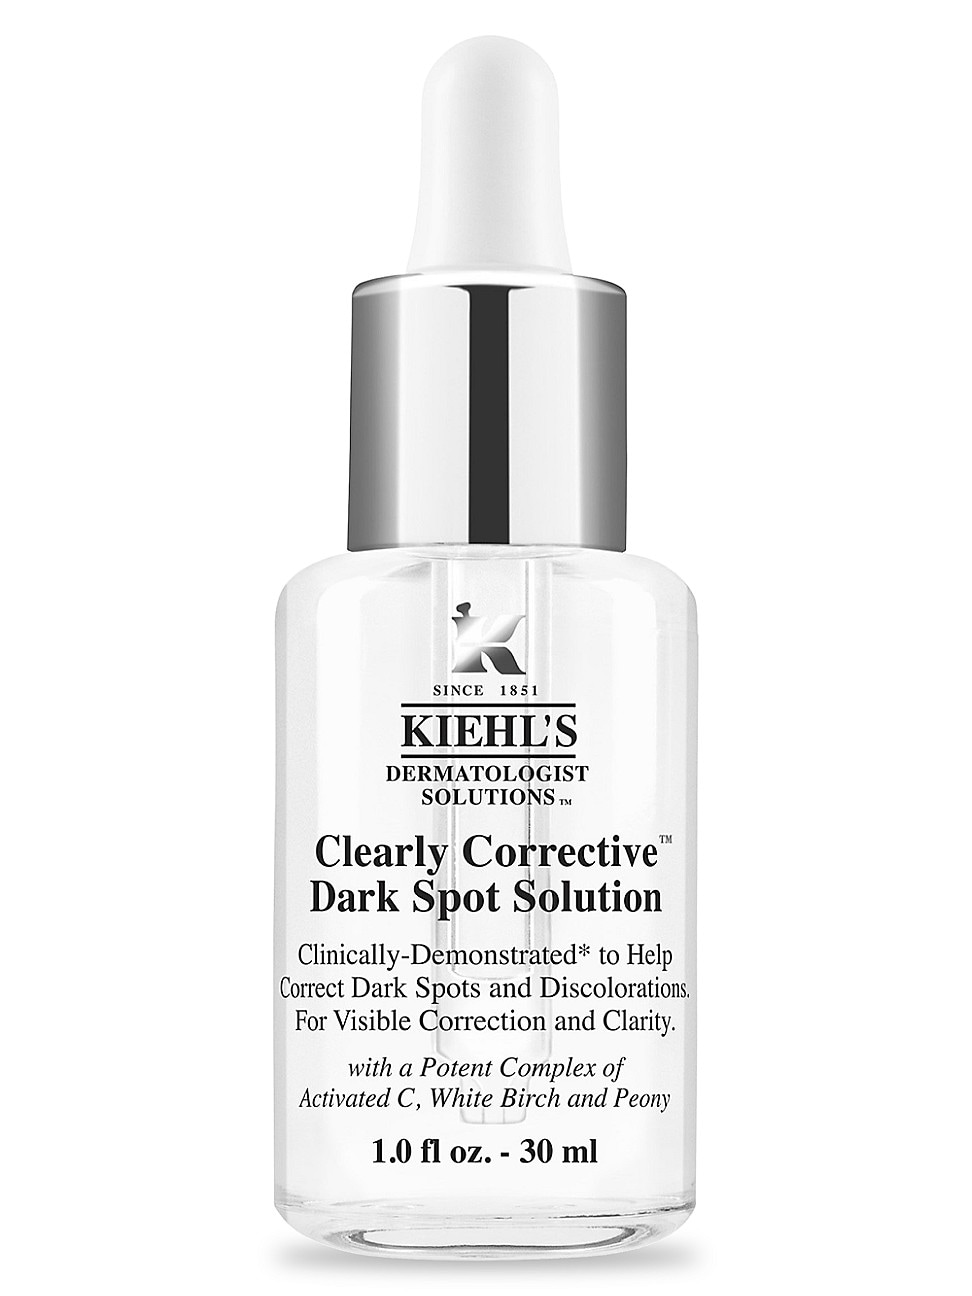 Kiehl's Since 1851 1851 Women's Clearly Corrective Dark Spot Solution In Size 1.7 Oz. & Under